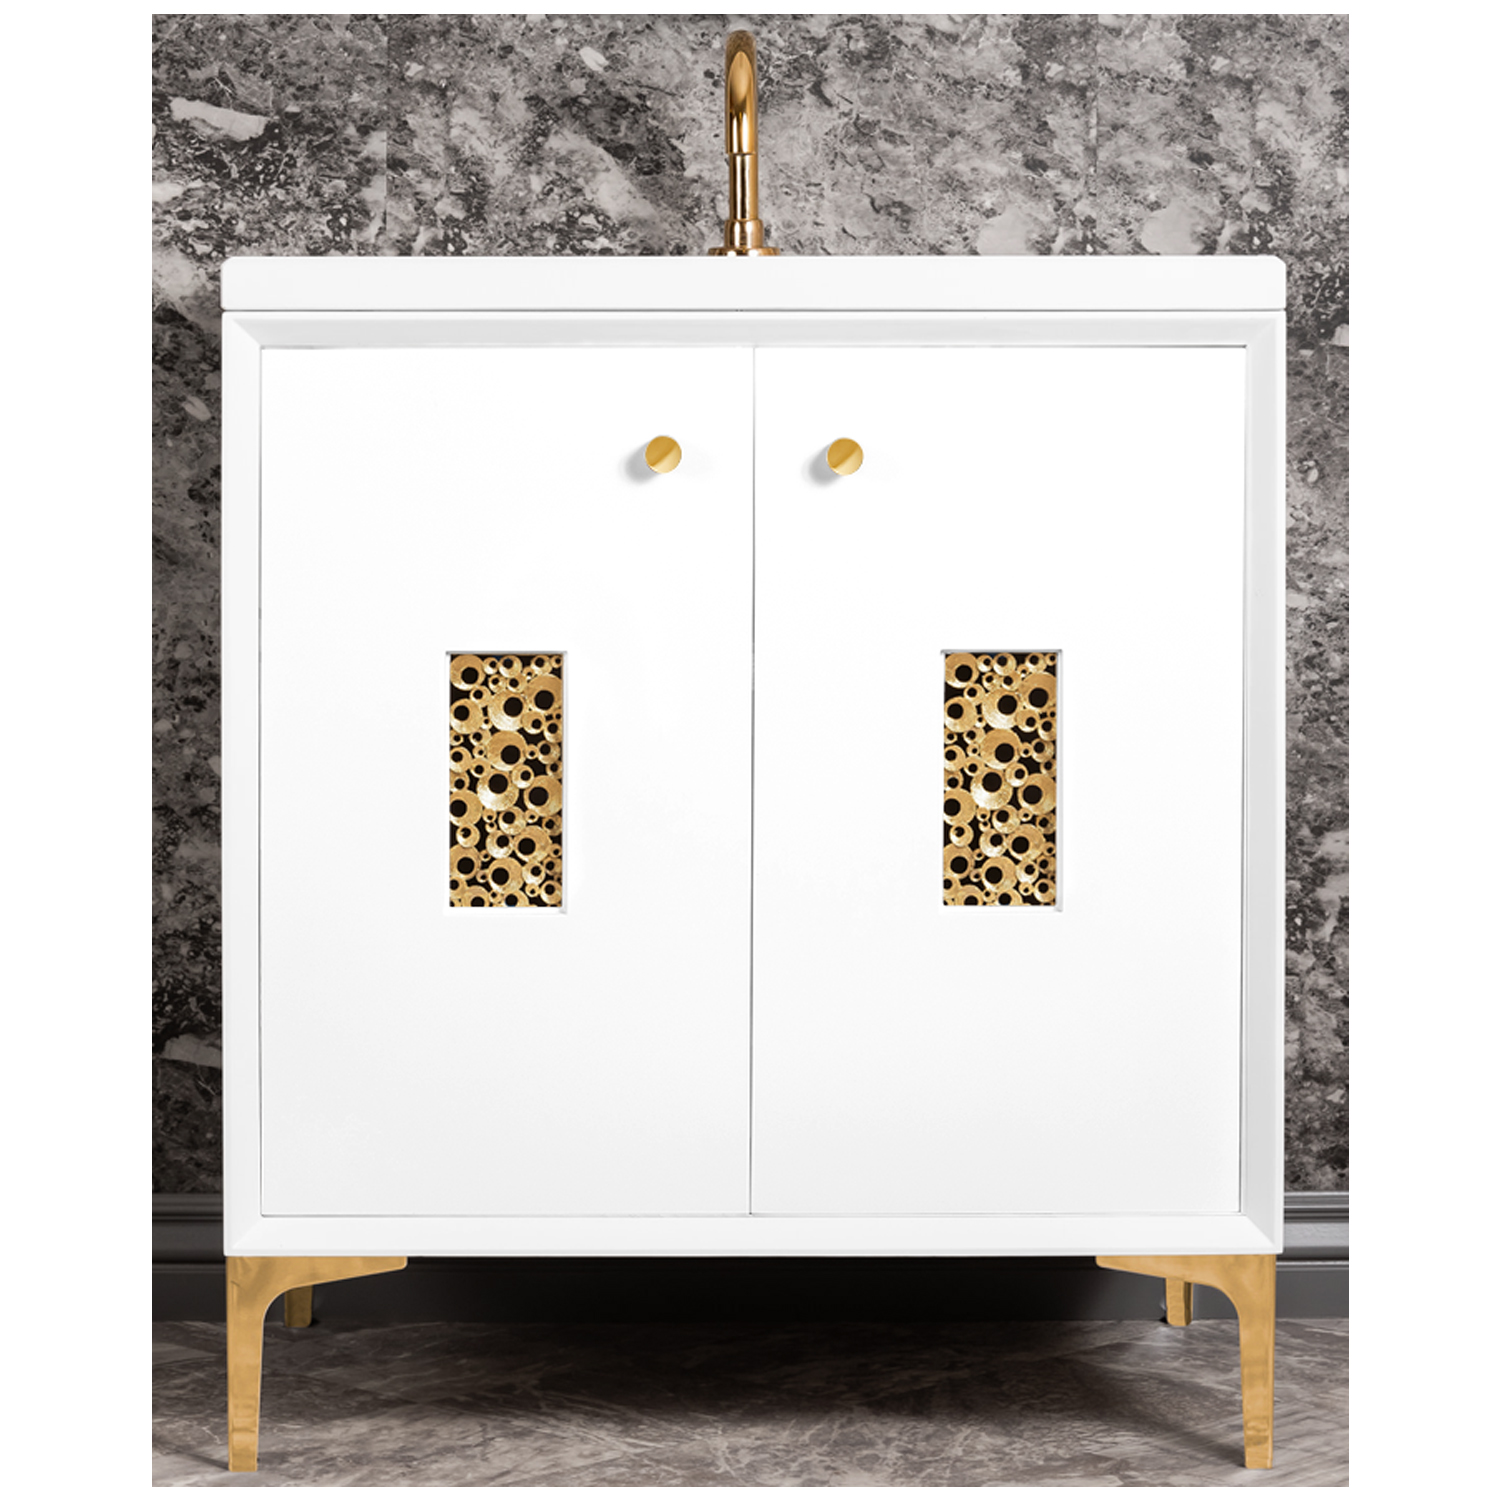 """VAN30W-010   30"""" White Frame with Coral - Shown with PB (Polished Brass)"""